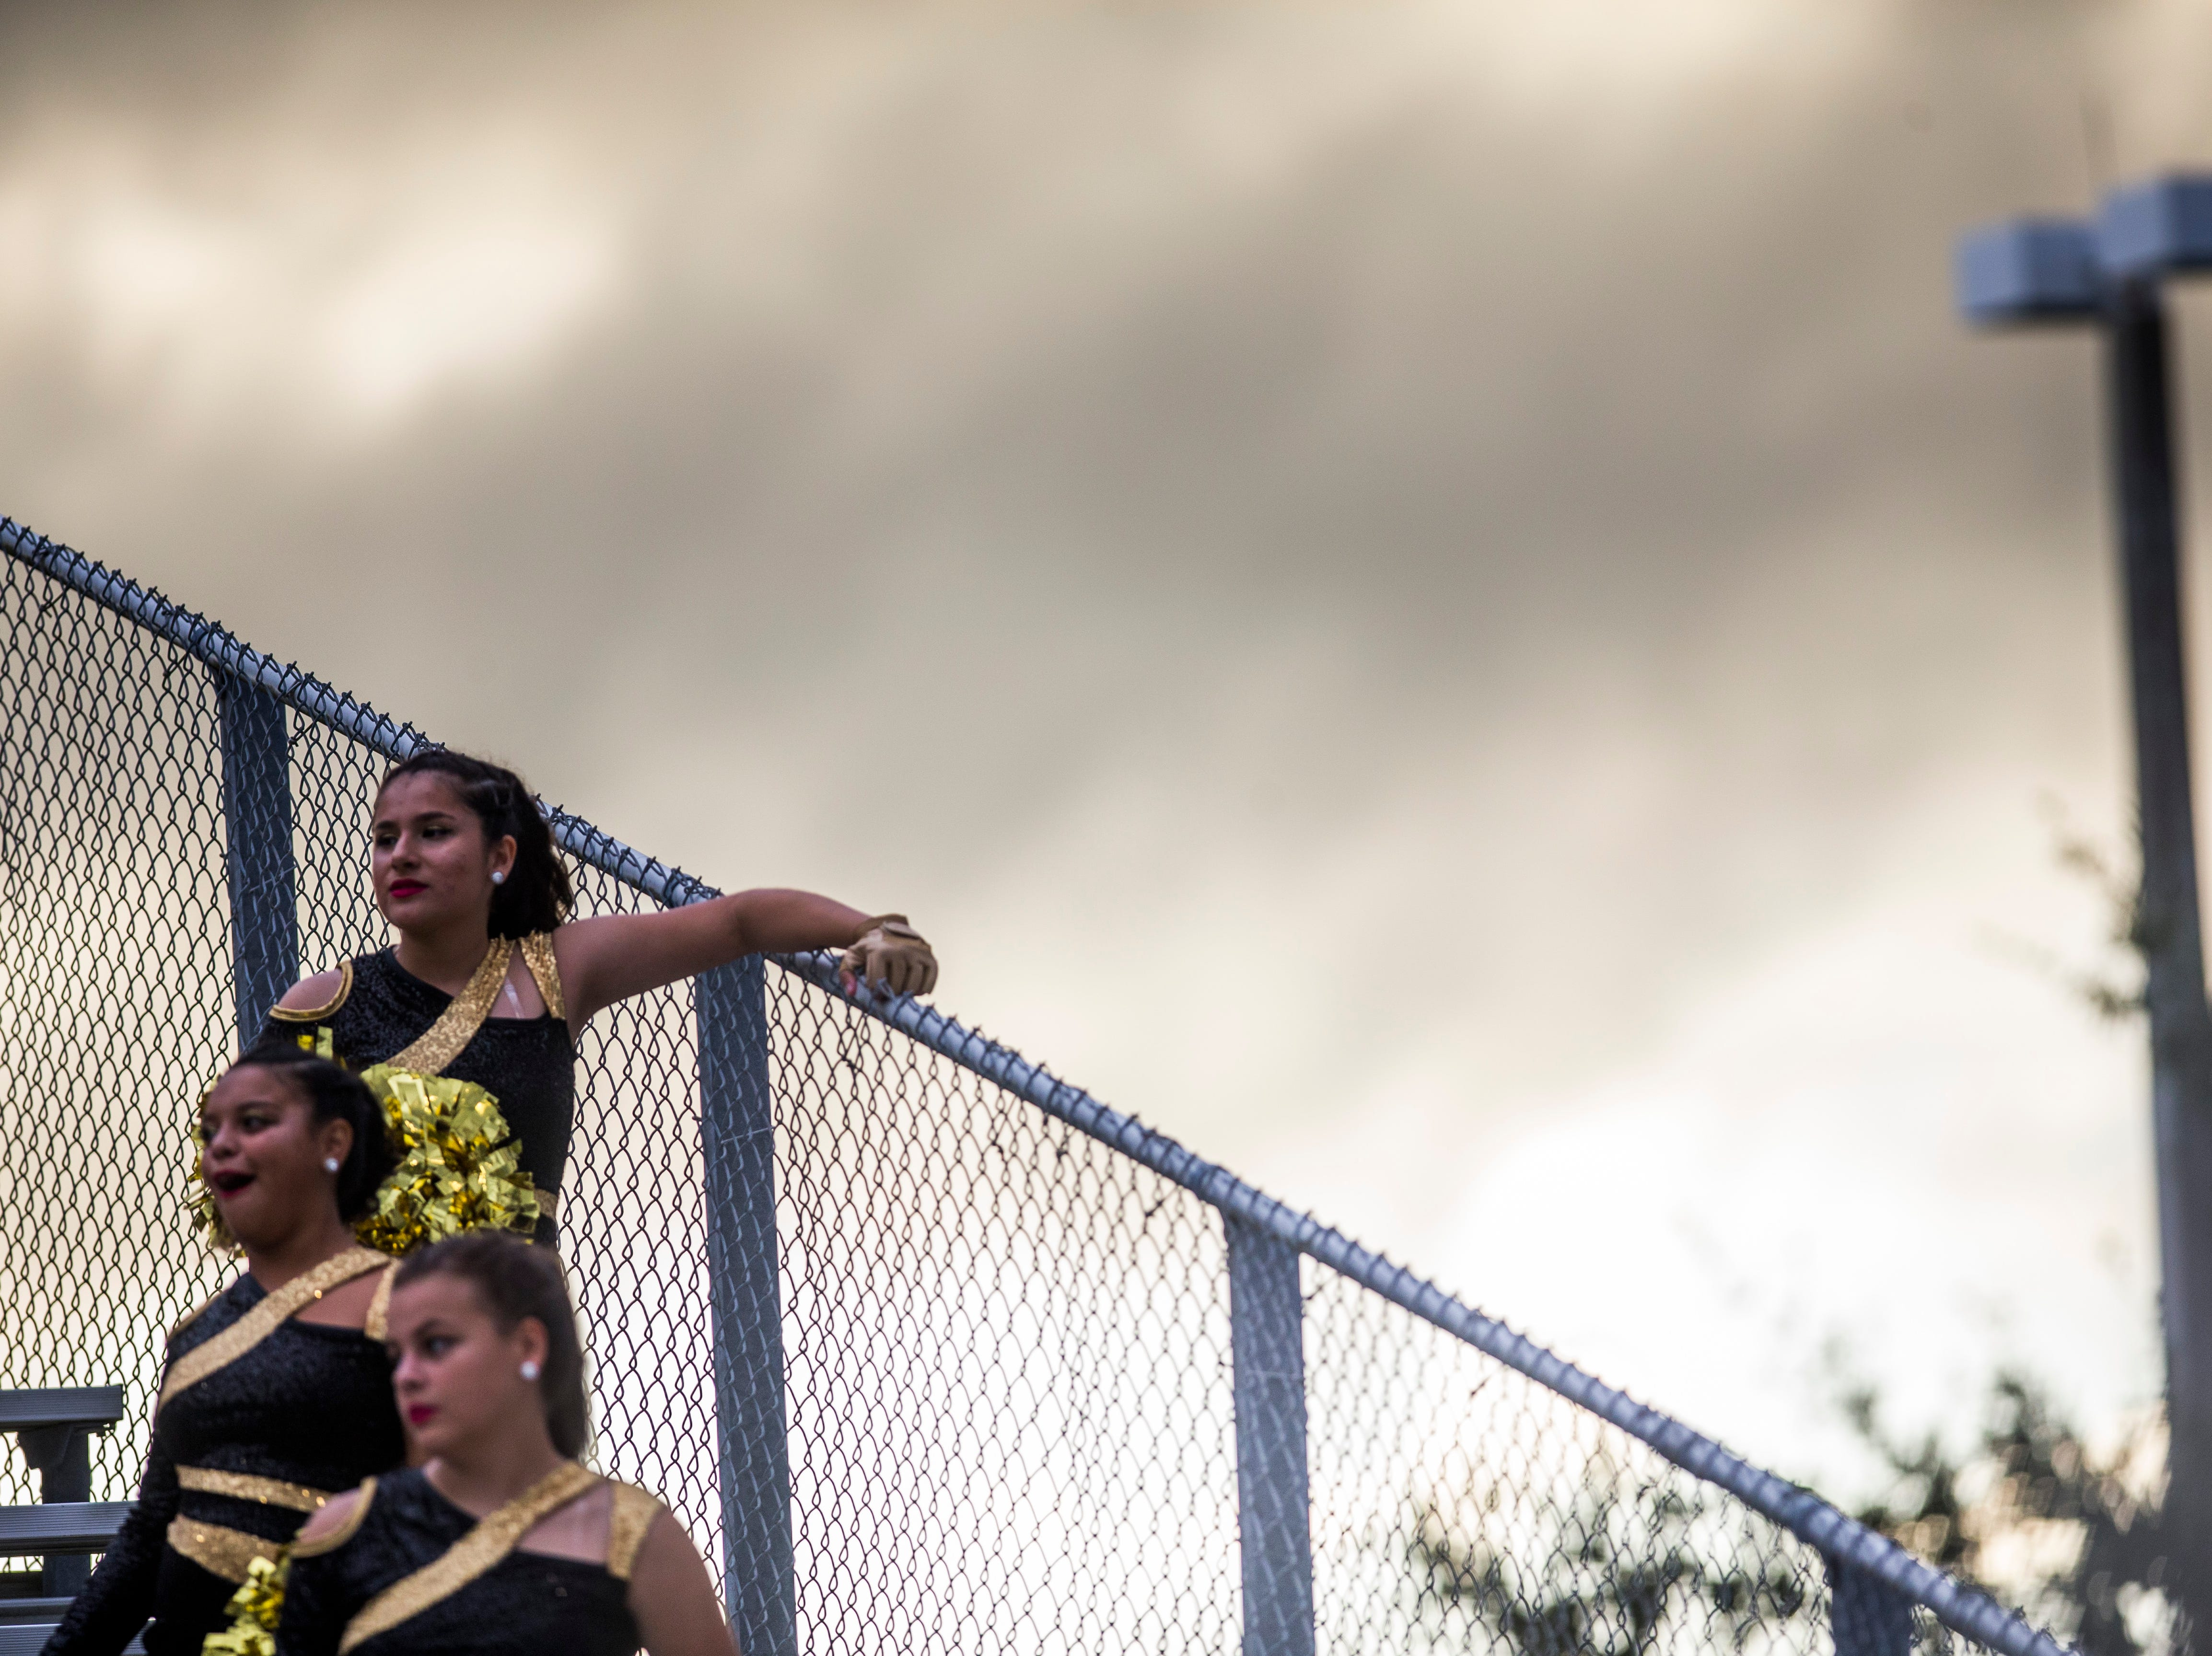 Golden Gate dancers watch from the bleachers during the game against Immokalee at Golden Gate High School on Friday, Aug. 24, 2018.